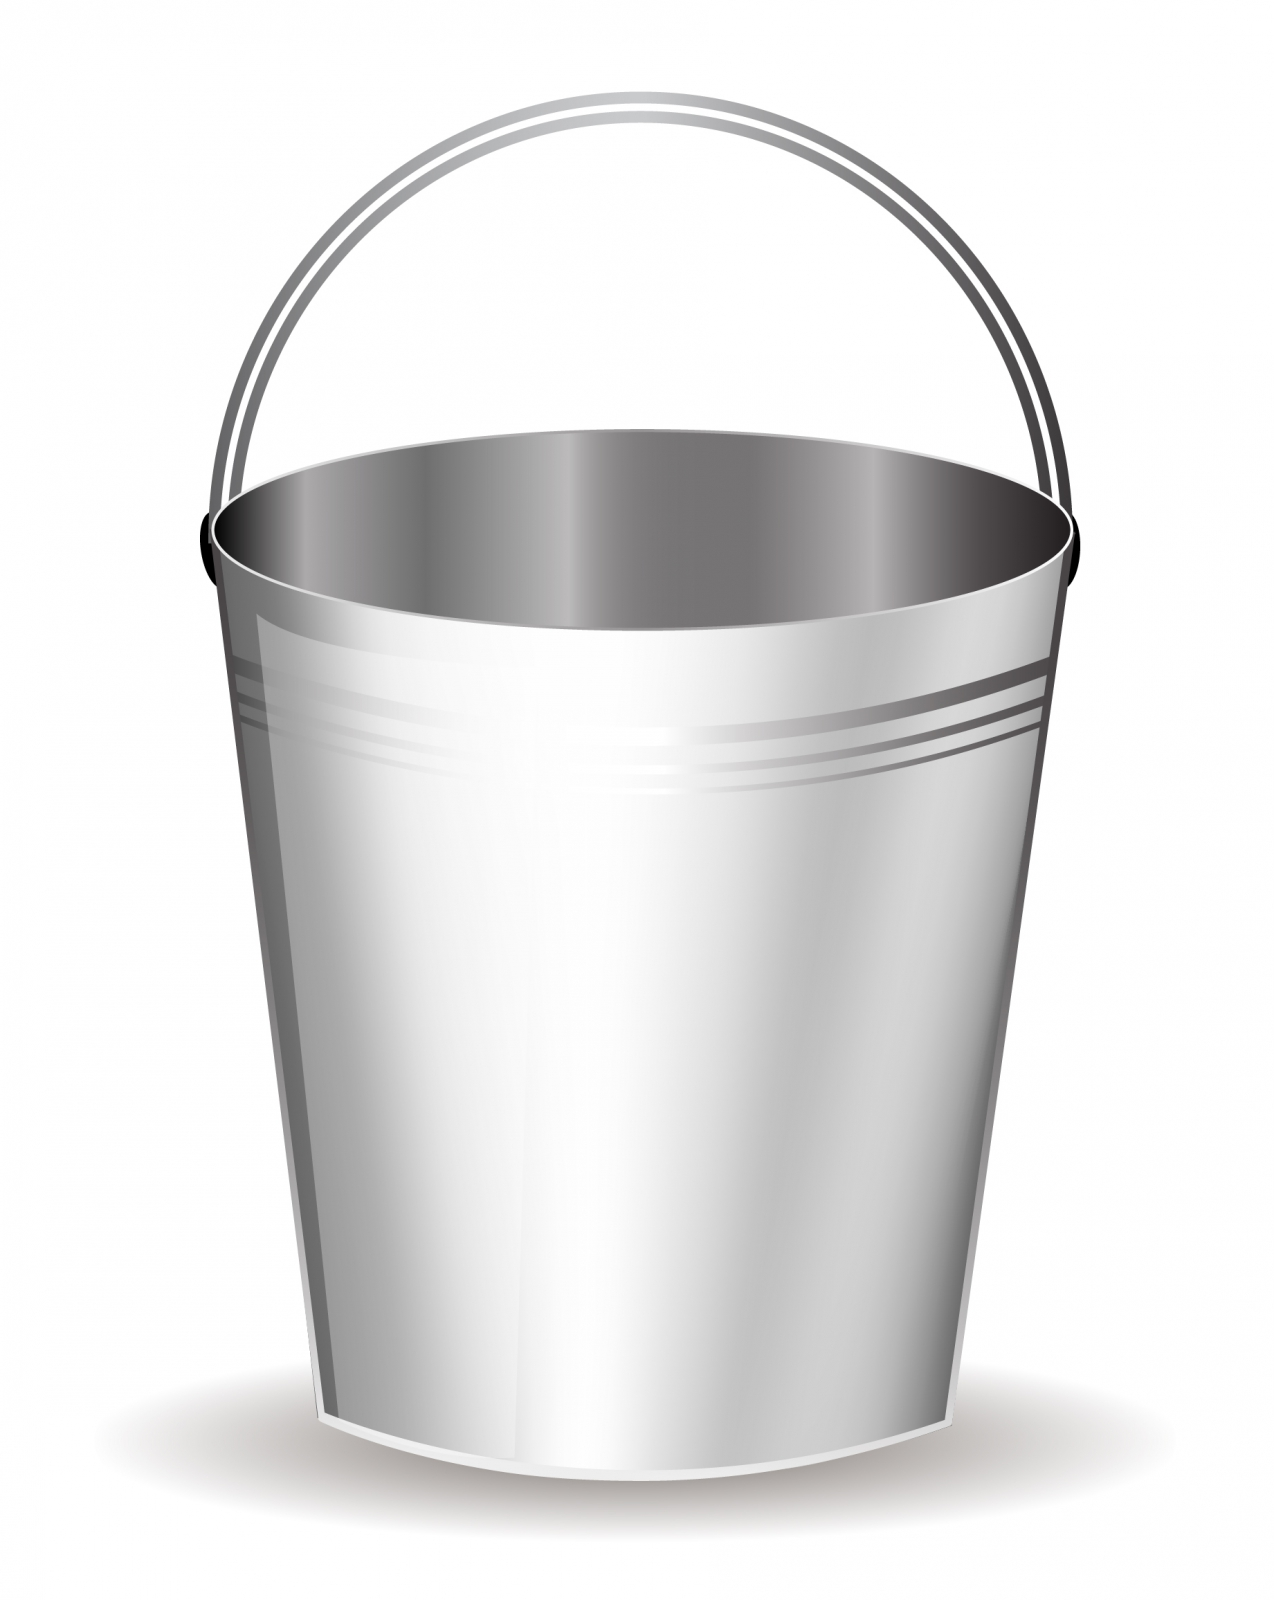 Full bucket clipart.